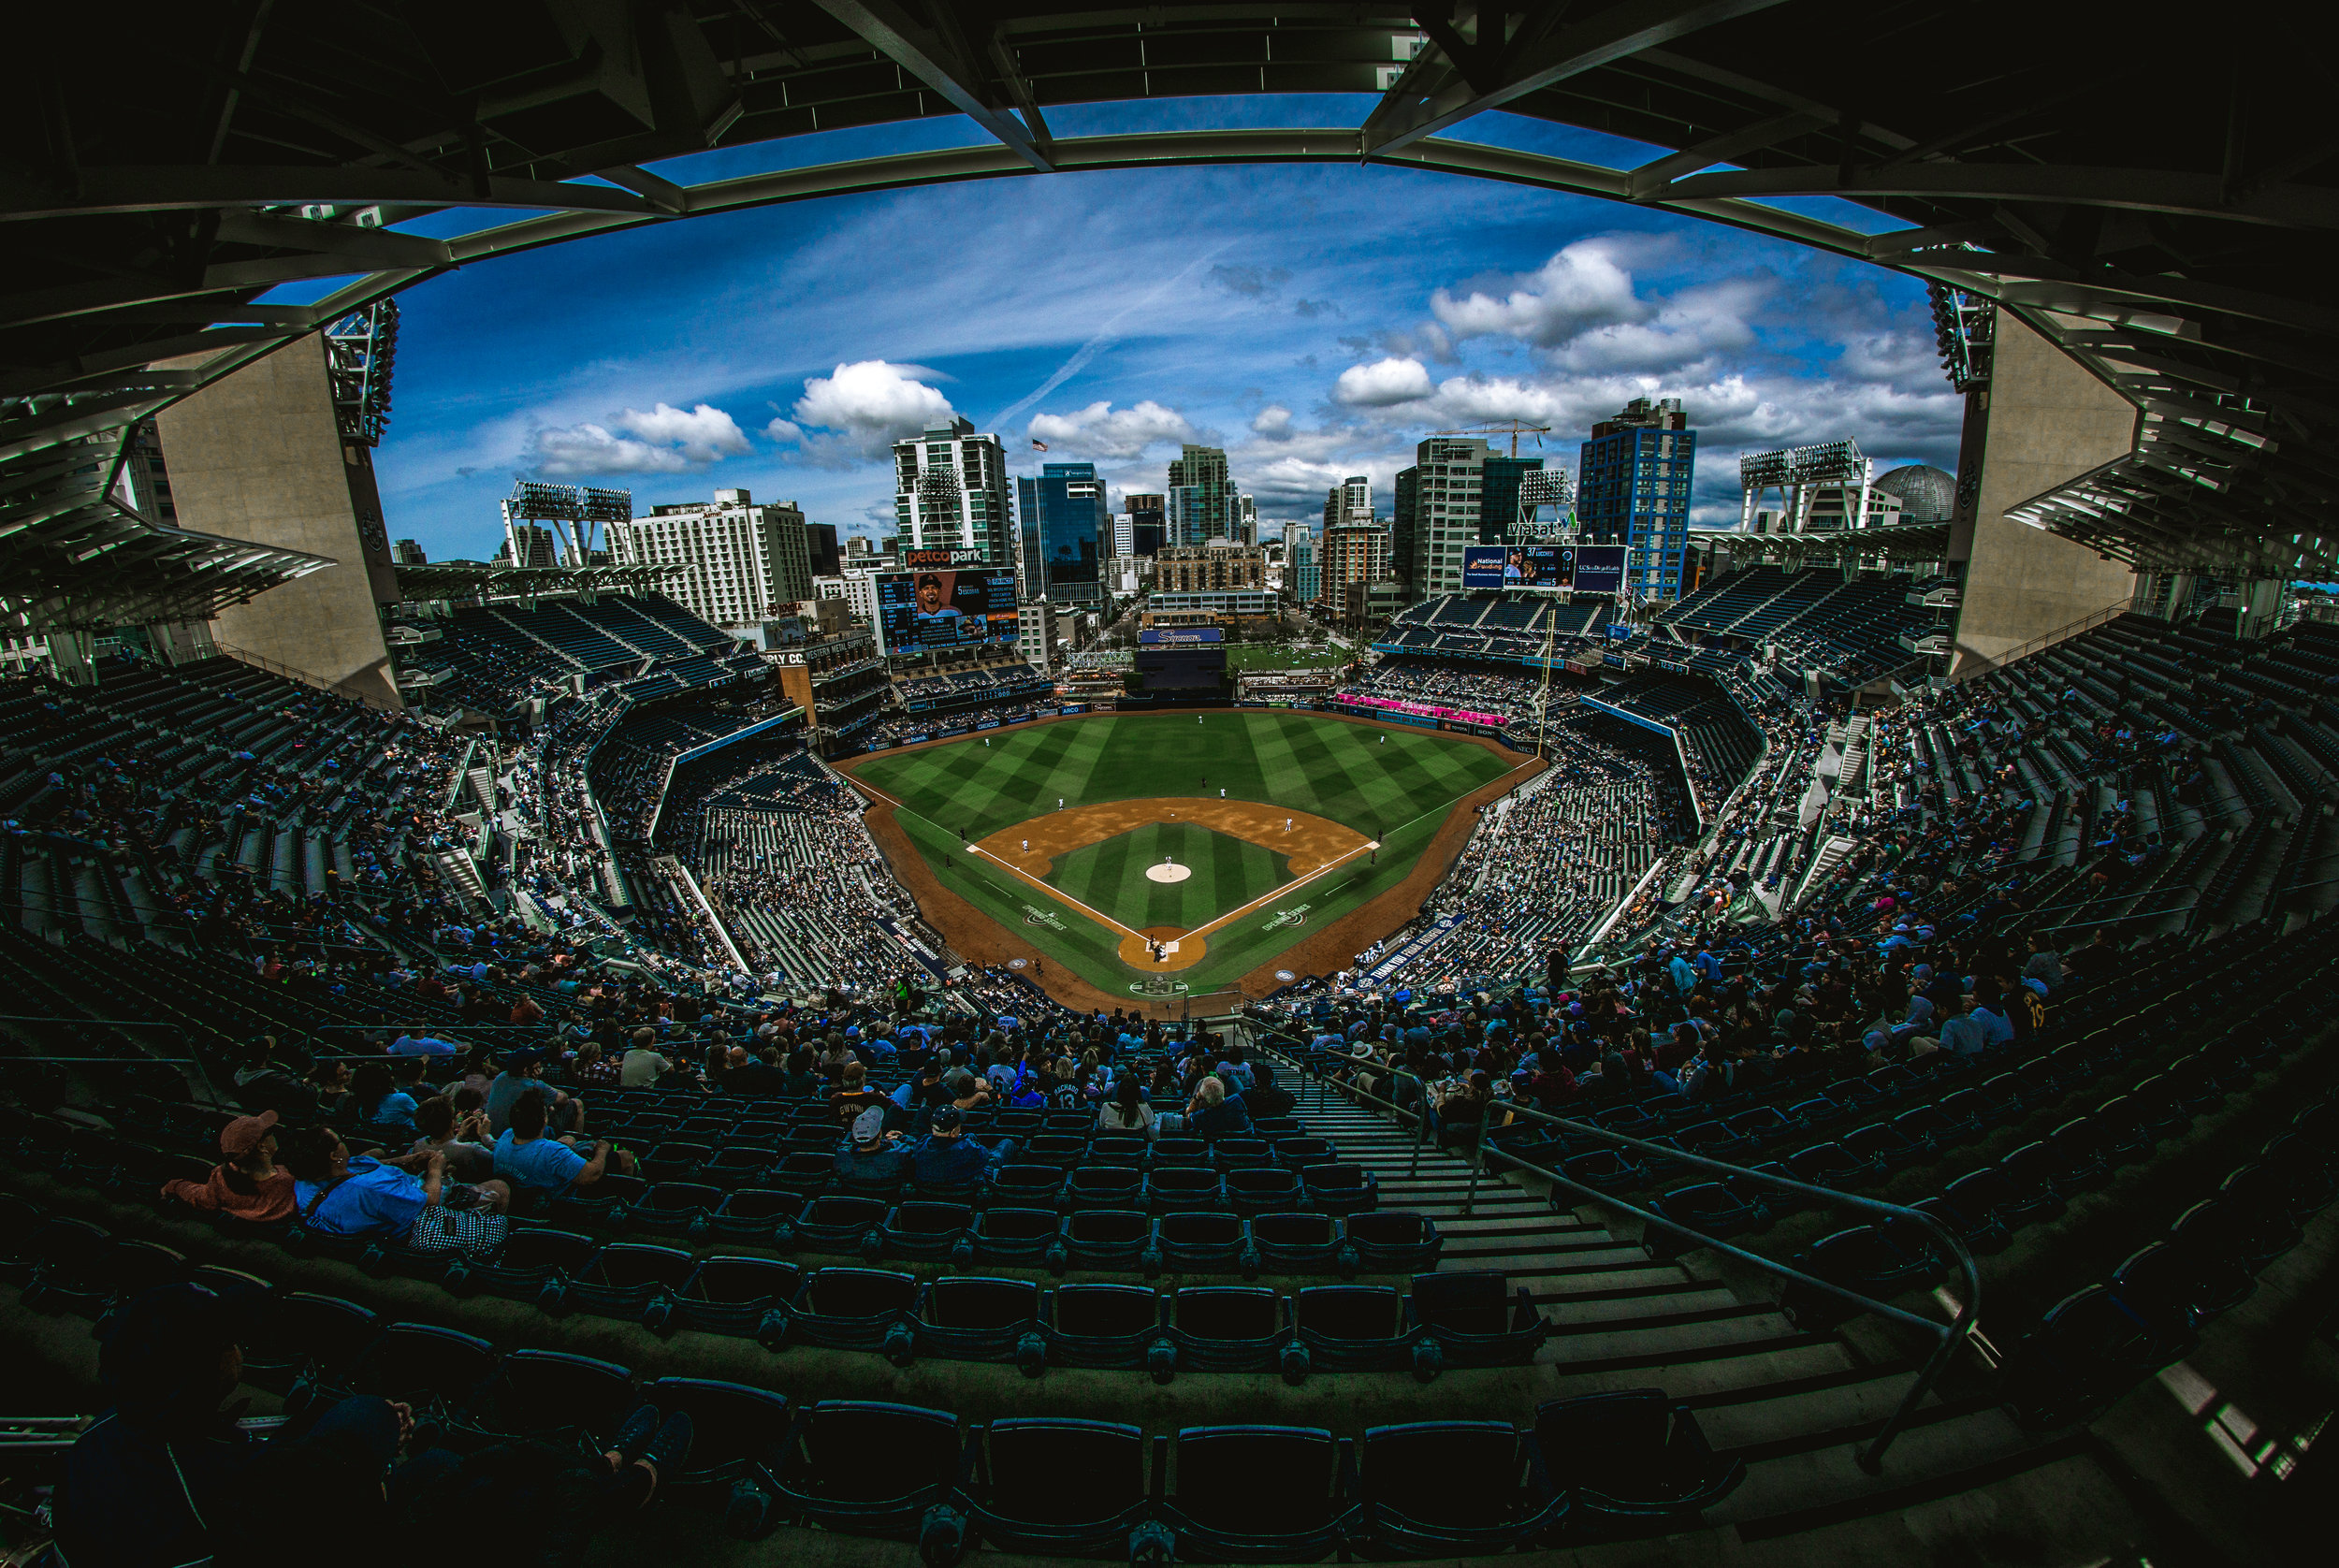 Events - Make sure to check out all the exciting events and things to do around San Diego, CA each year! Annual events include:ComiconSan Diego Padres GamesUCSD & SDSU sporting events